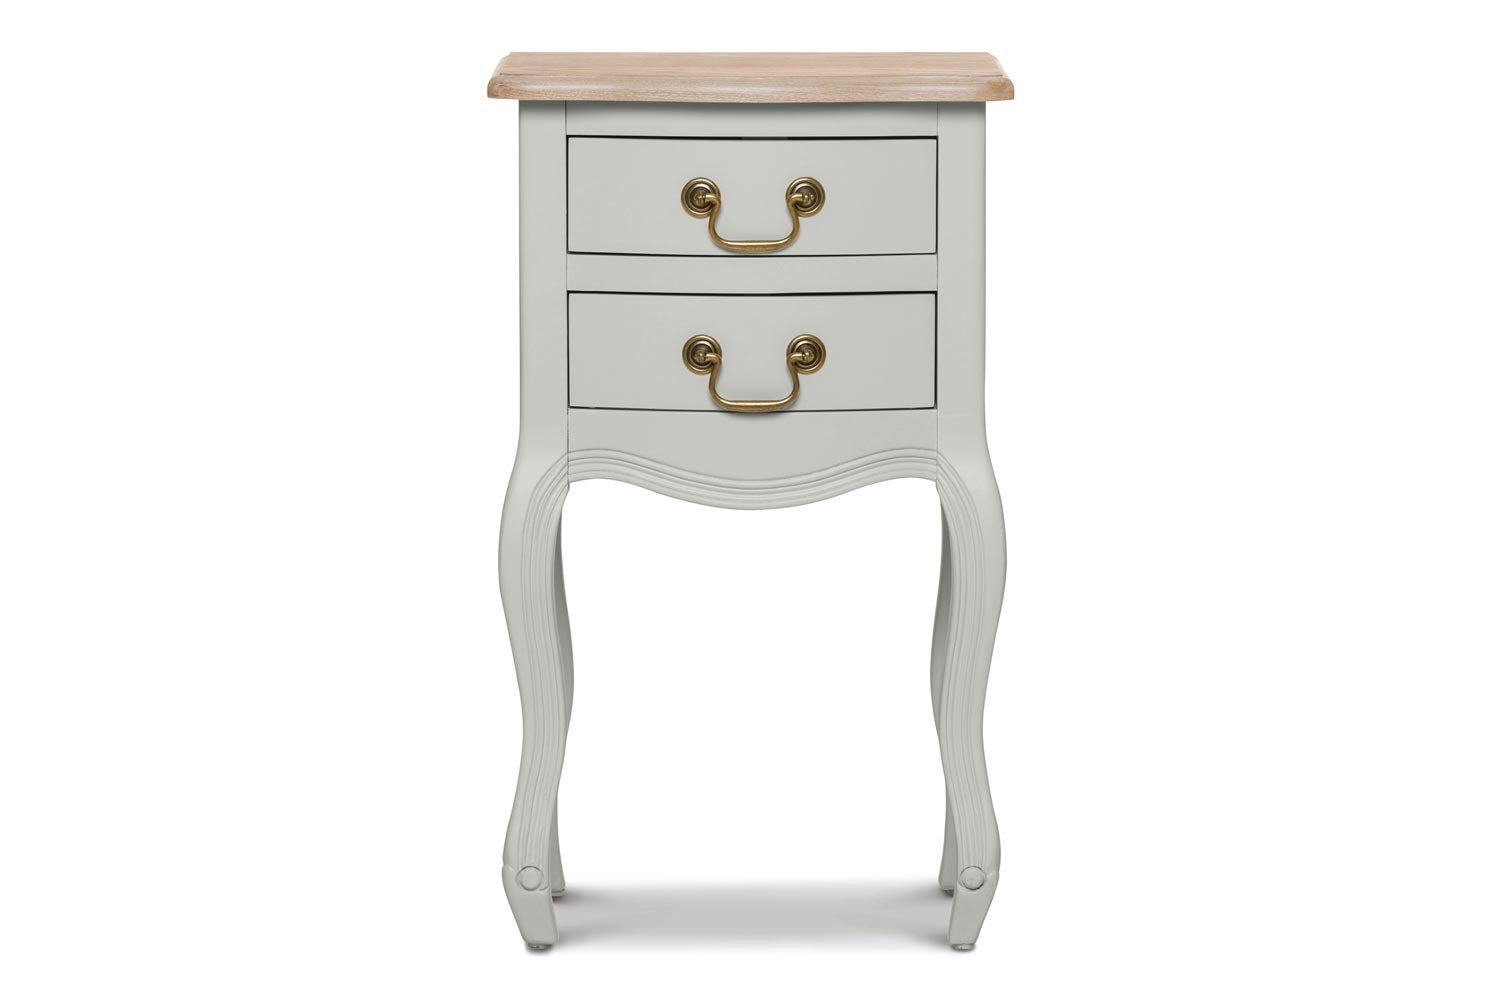 Bouvard 2 Drawer Bedside Locker | Oyster Bed